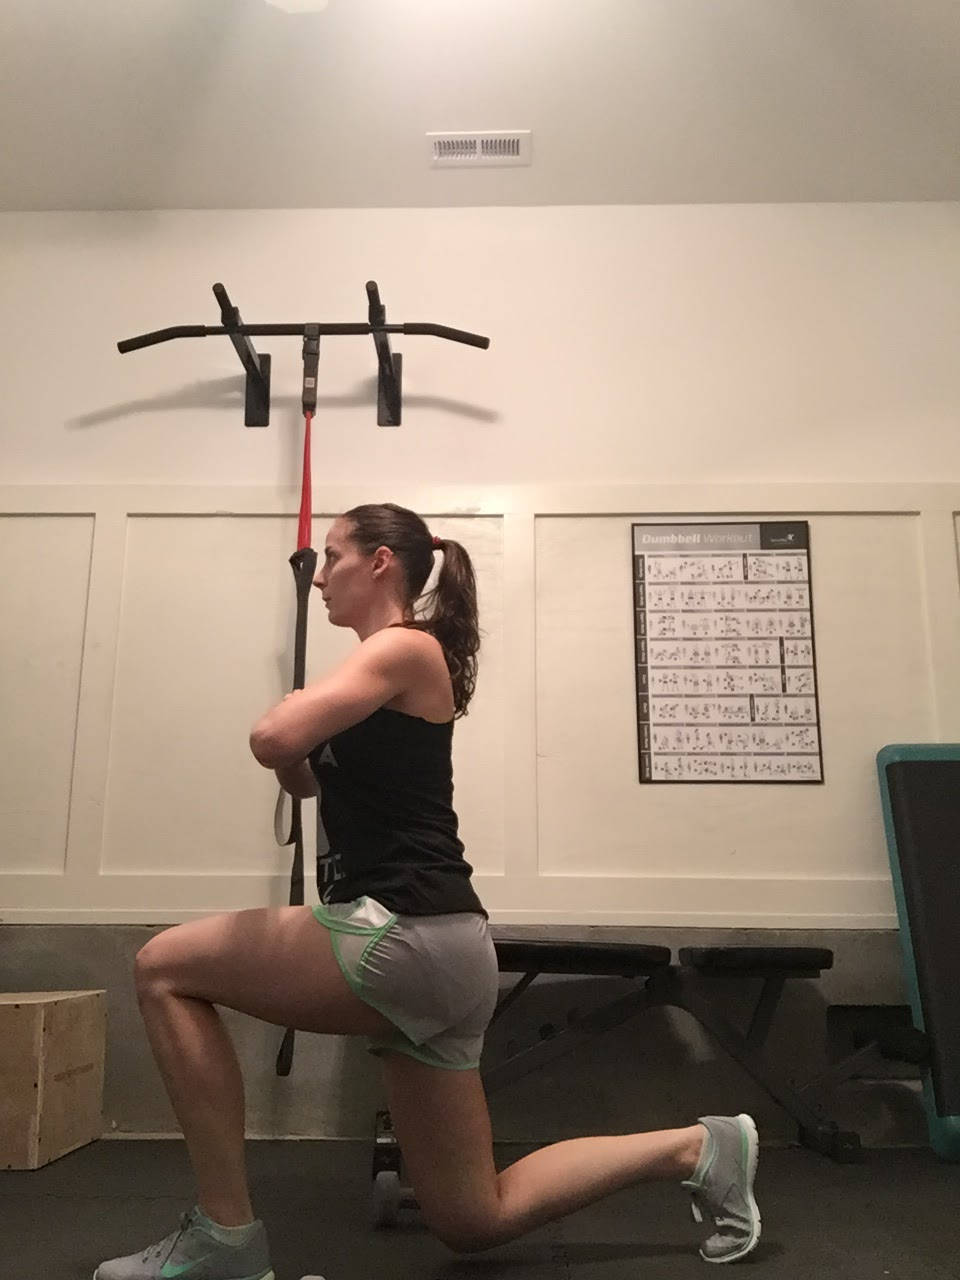 Beachbody Beach Bum 21 Day Fix Extreme 4 Review Lower Body Circuit On Pinterest Bodies Workouts And Into Forward Lunge Position With Weights For 30 Seconds Put Down Continue To Step But When You Push Back Kick Leg